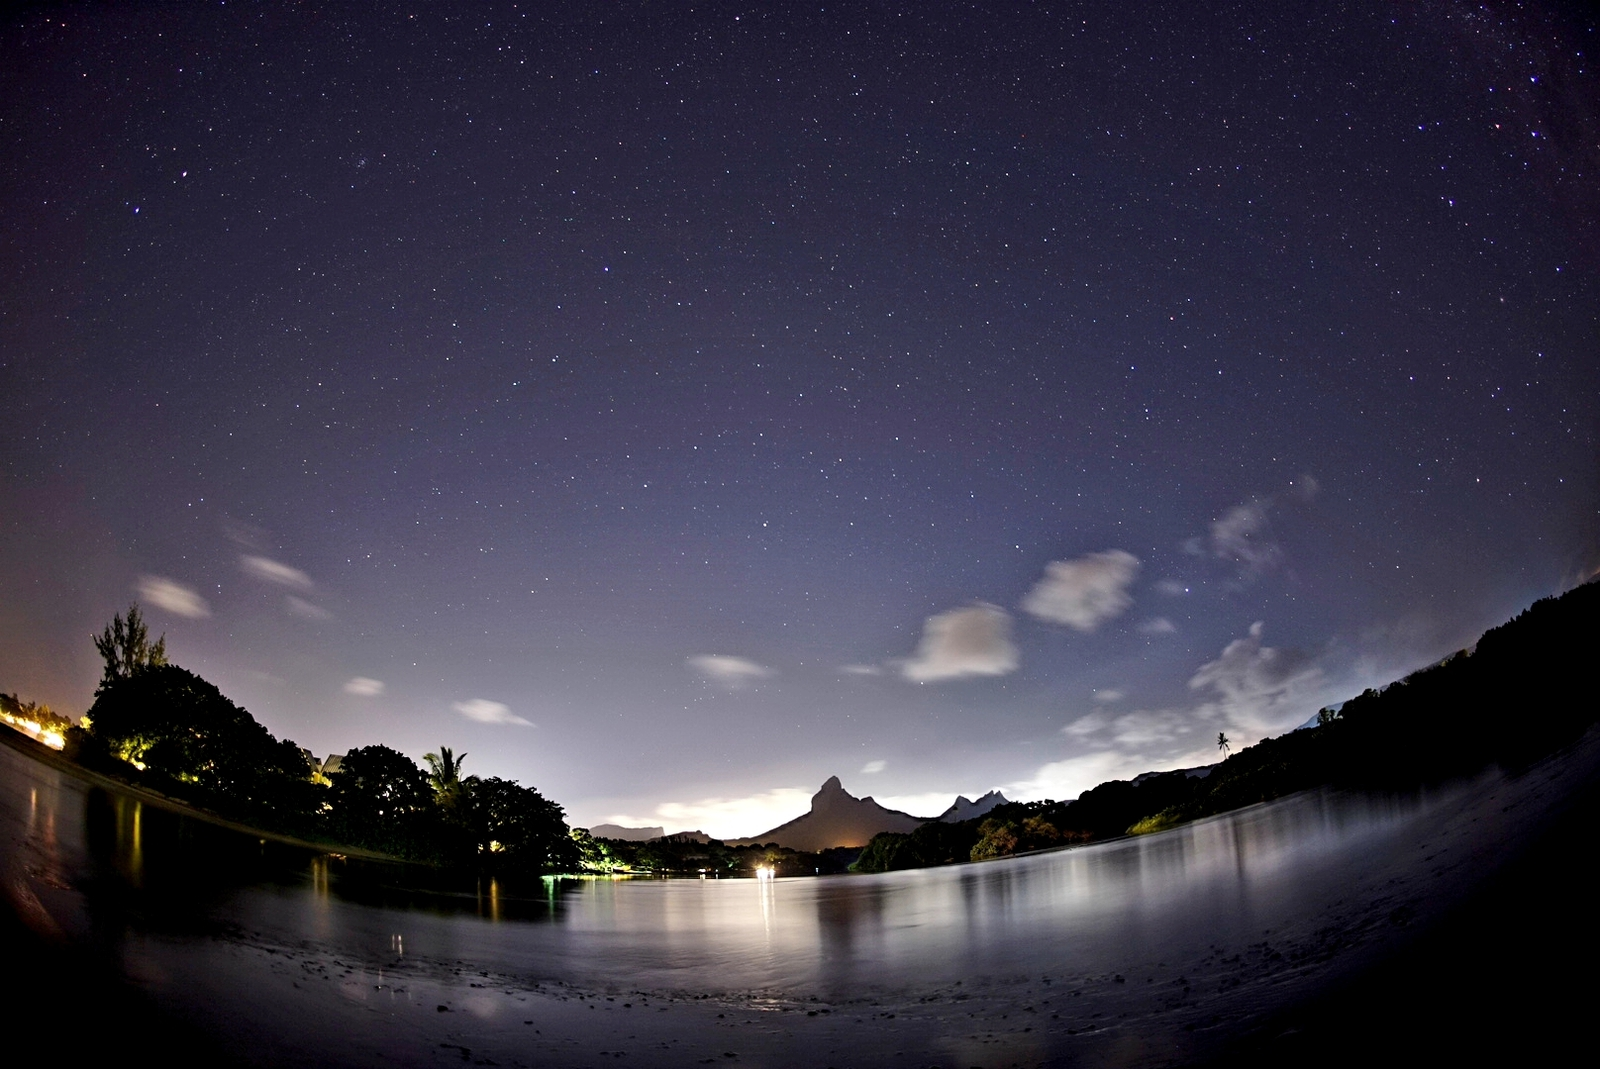 Relaxing by the river, Mauritius